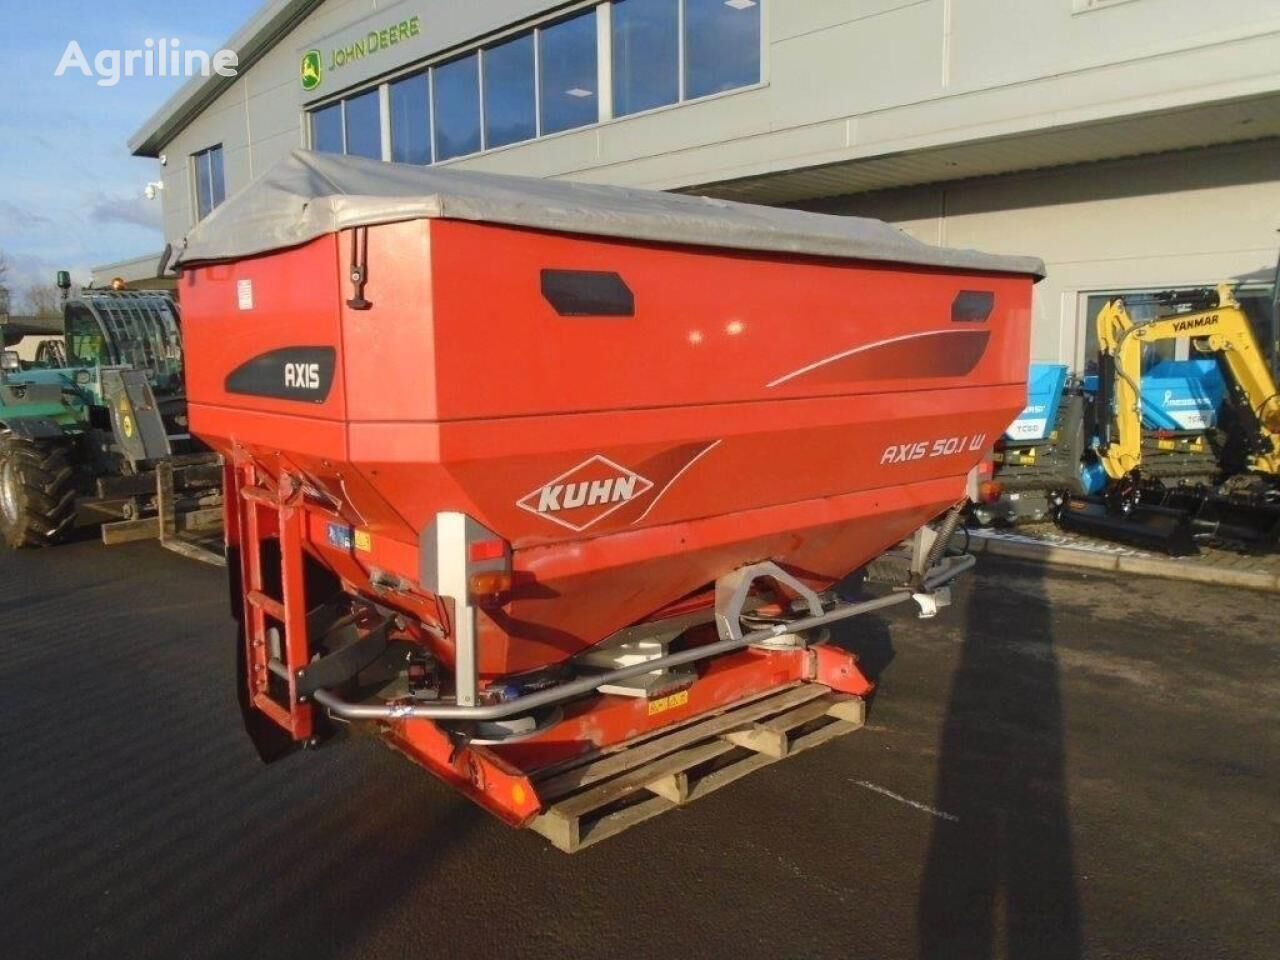 KUHN 50.1w axis mounted fertilizer spreader